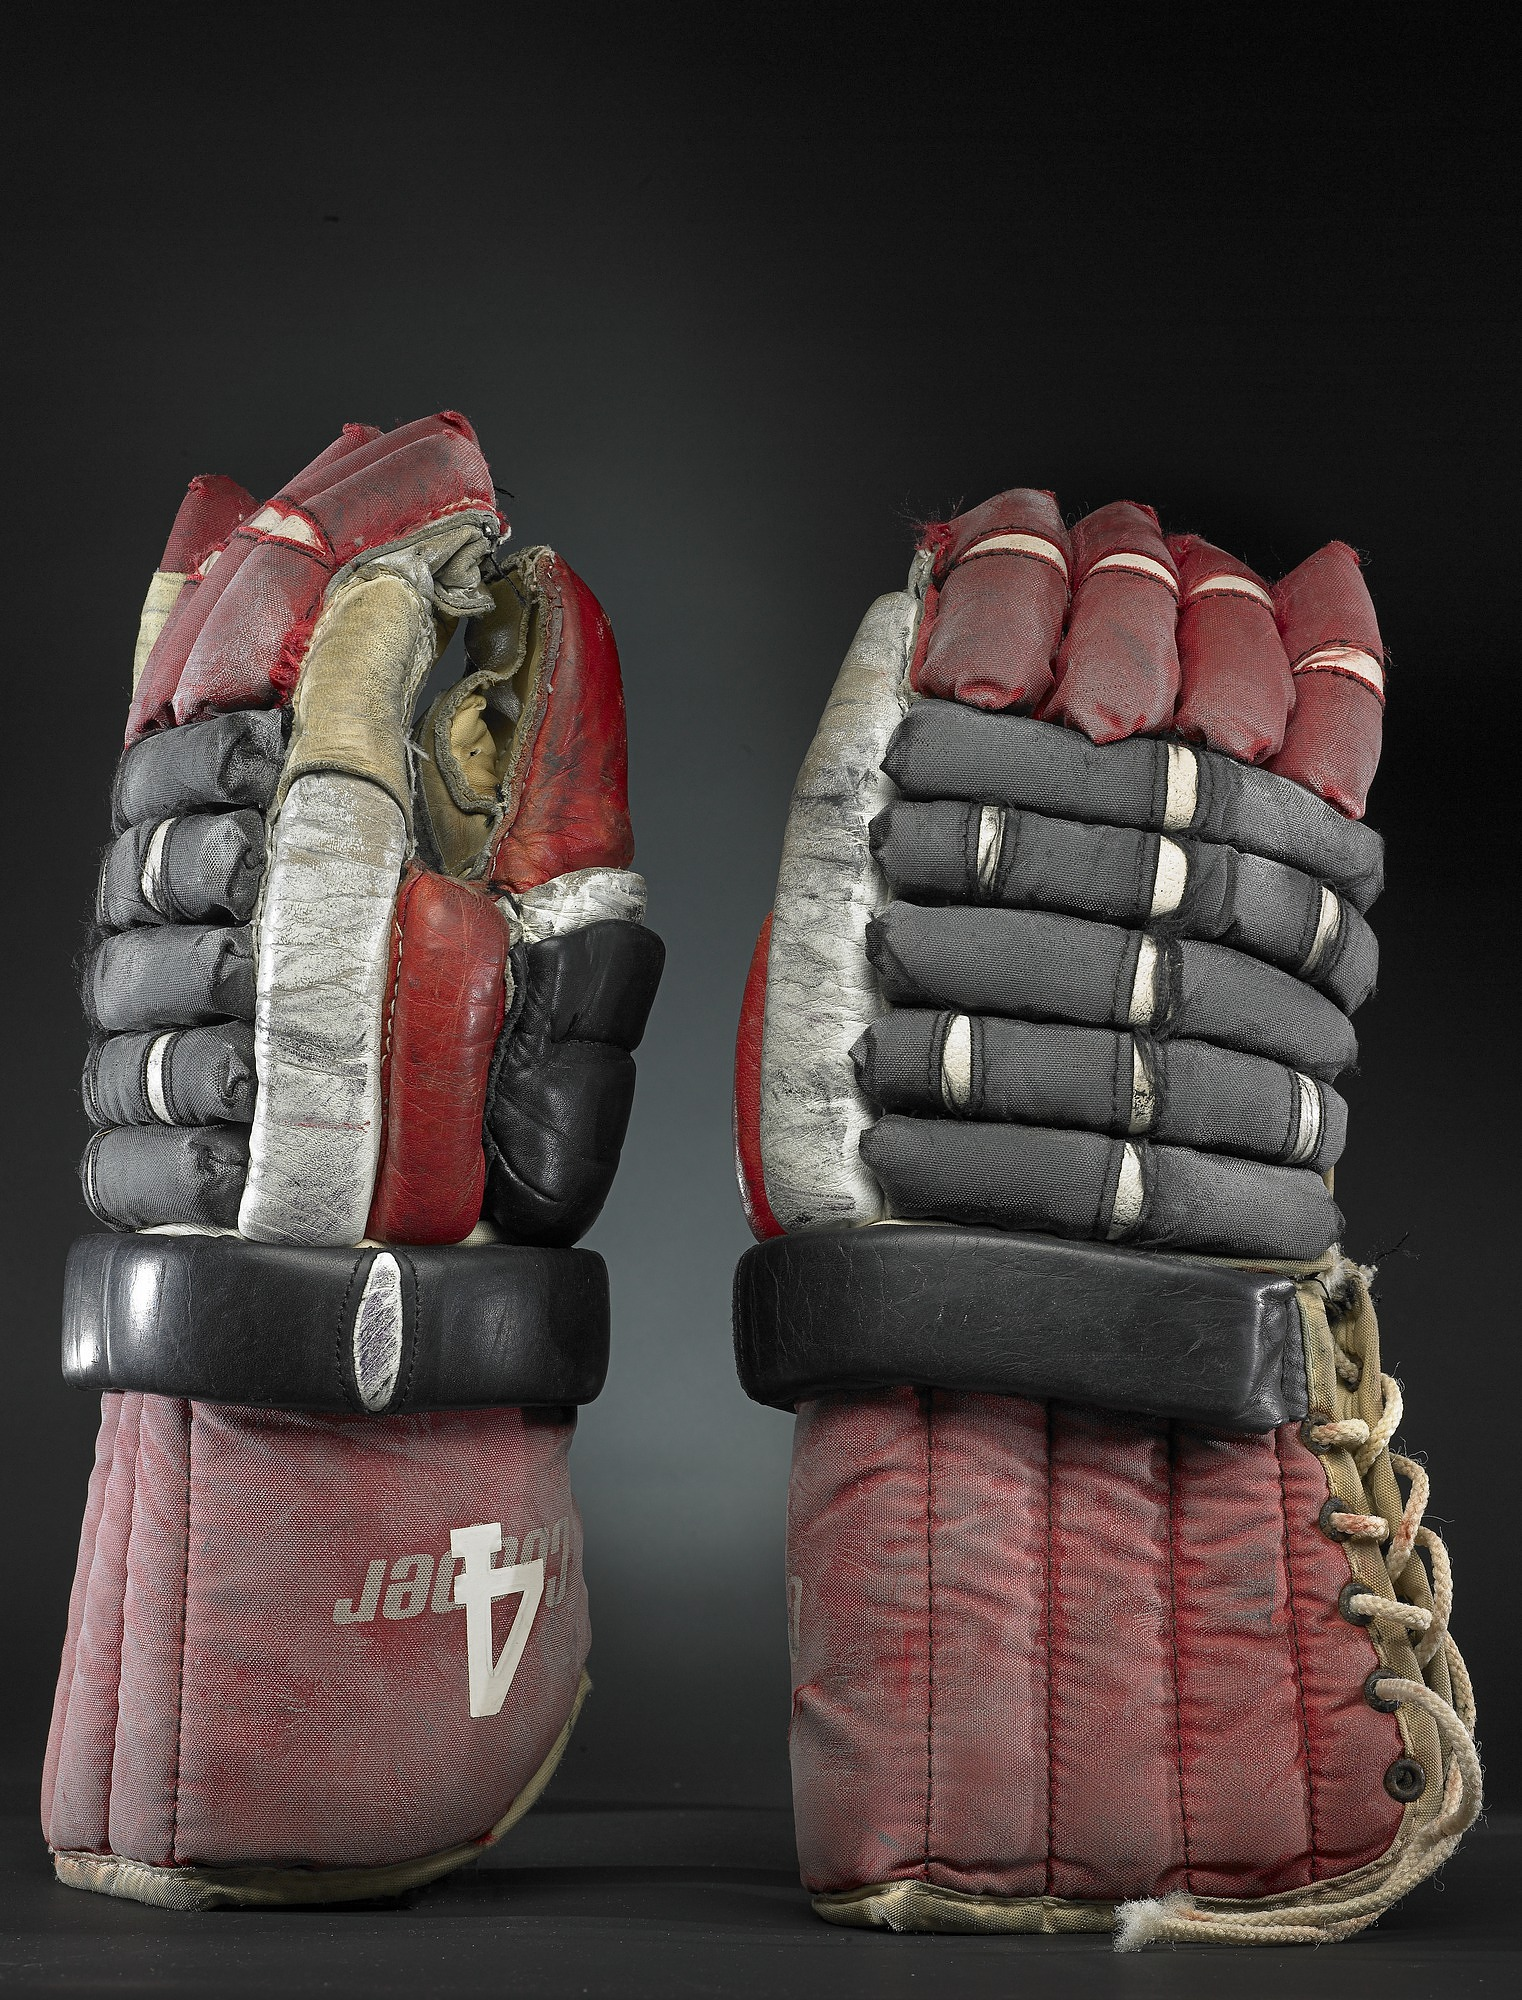 images for Hockey Gloves, worn by Bobby Orr